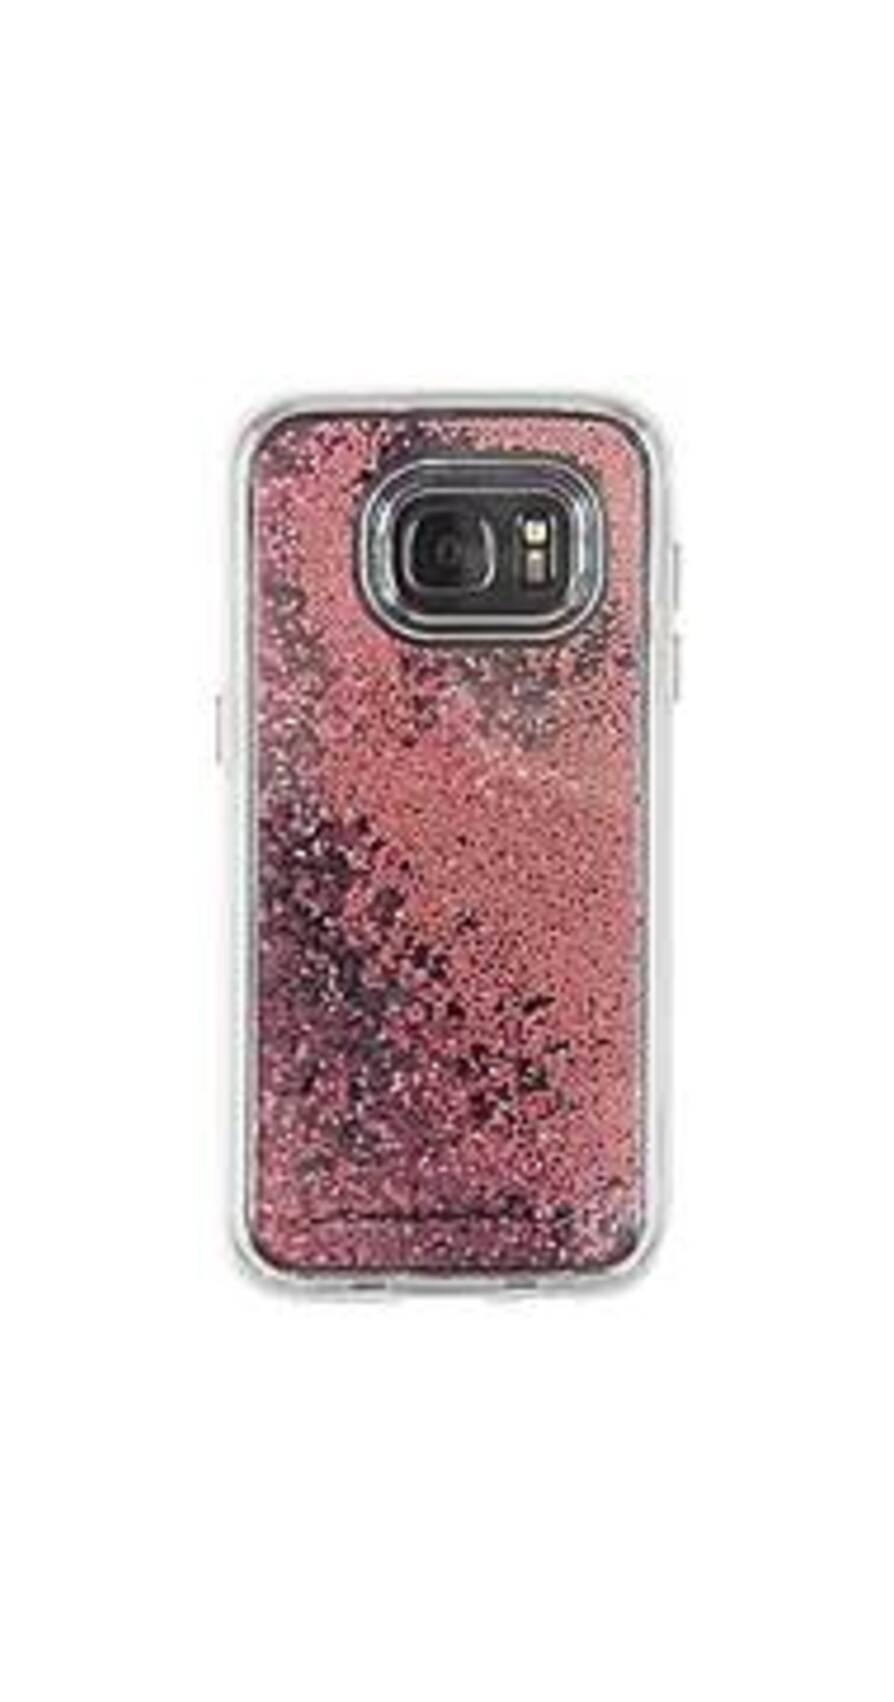 Case-Mate V1-PO18492 Waterfall Case for Samsung Galaxy S7 Smartphone - Rose Gold